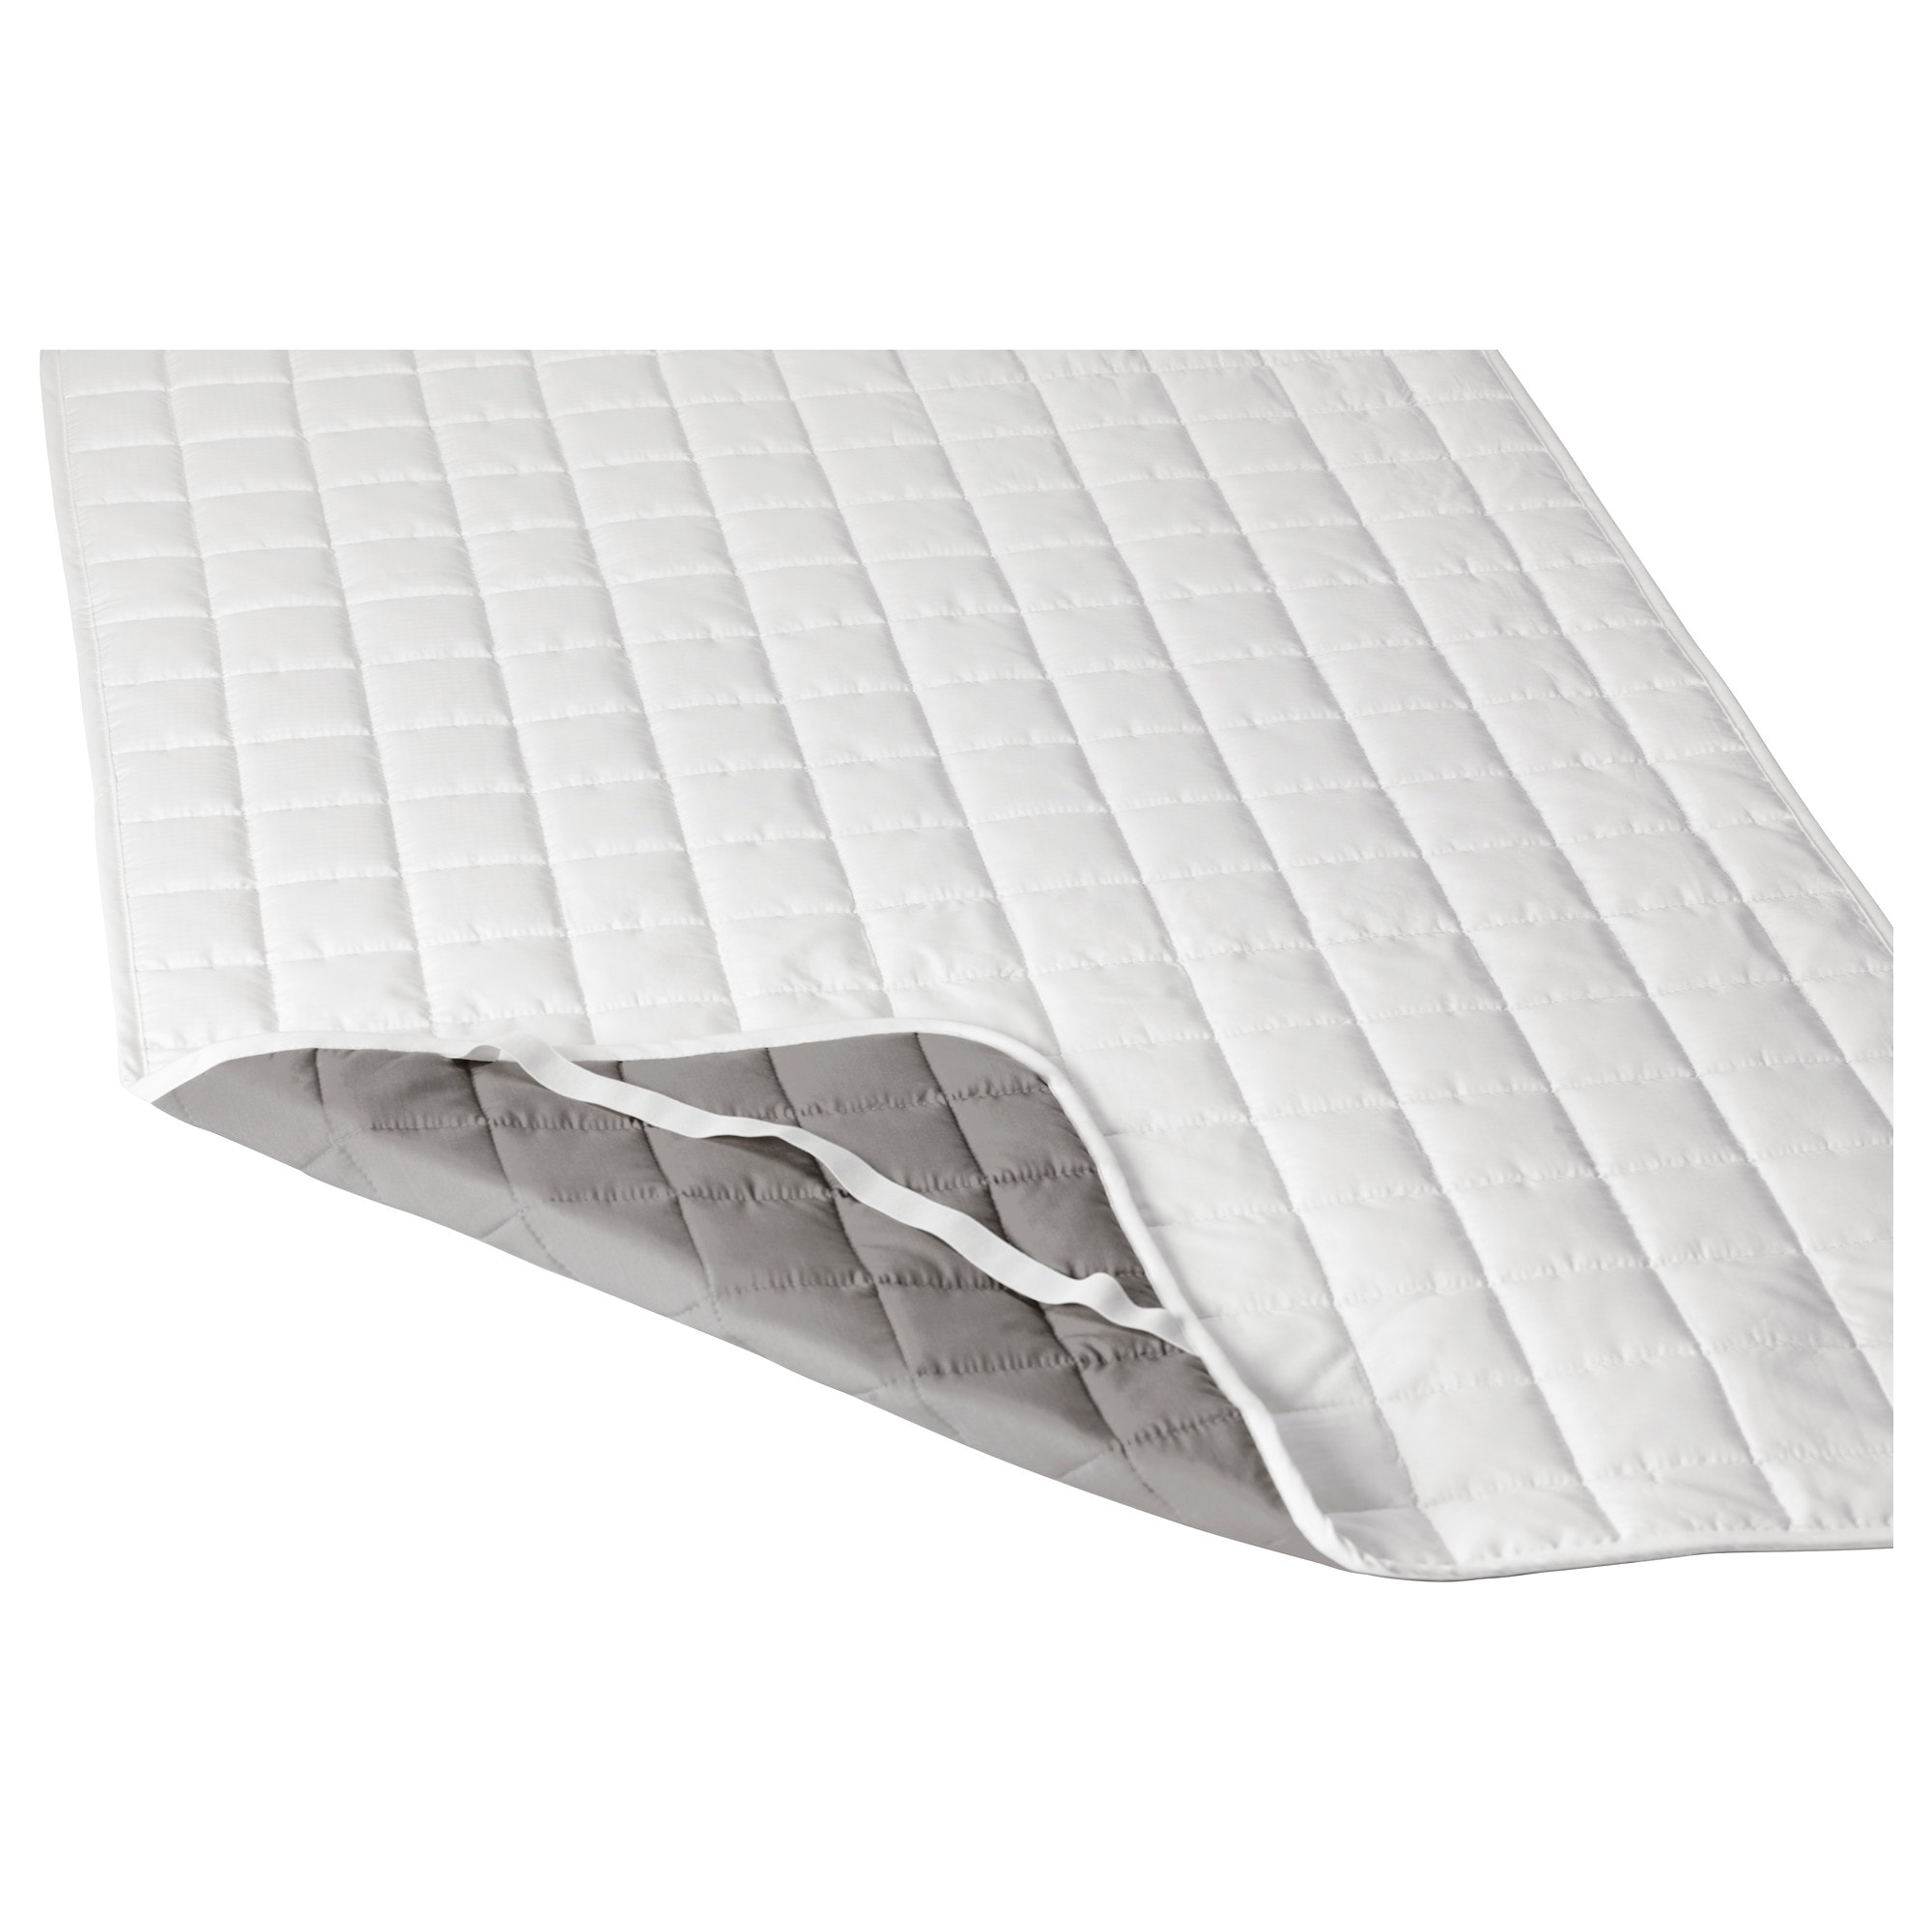 ROSENDUN Mattress protector Queen IKEA